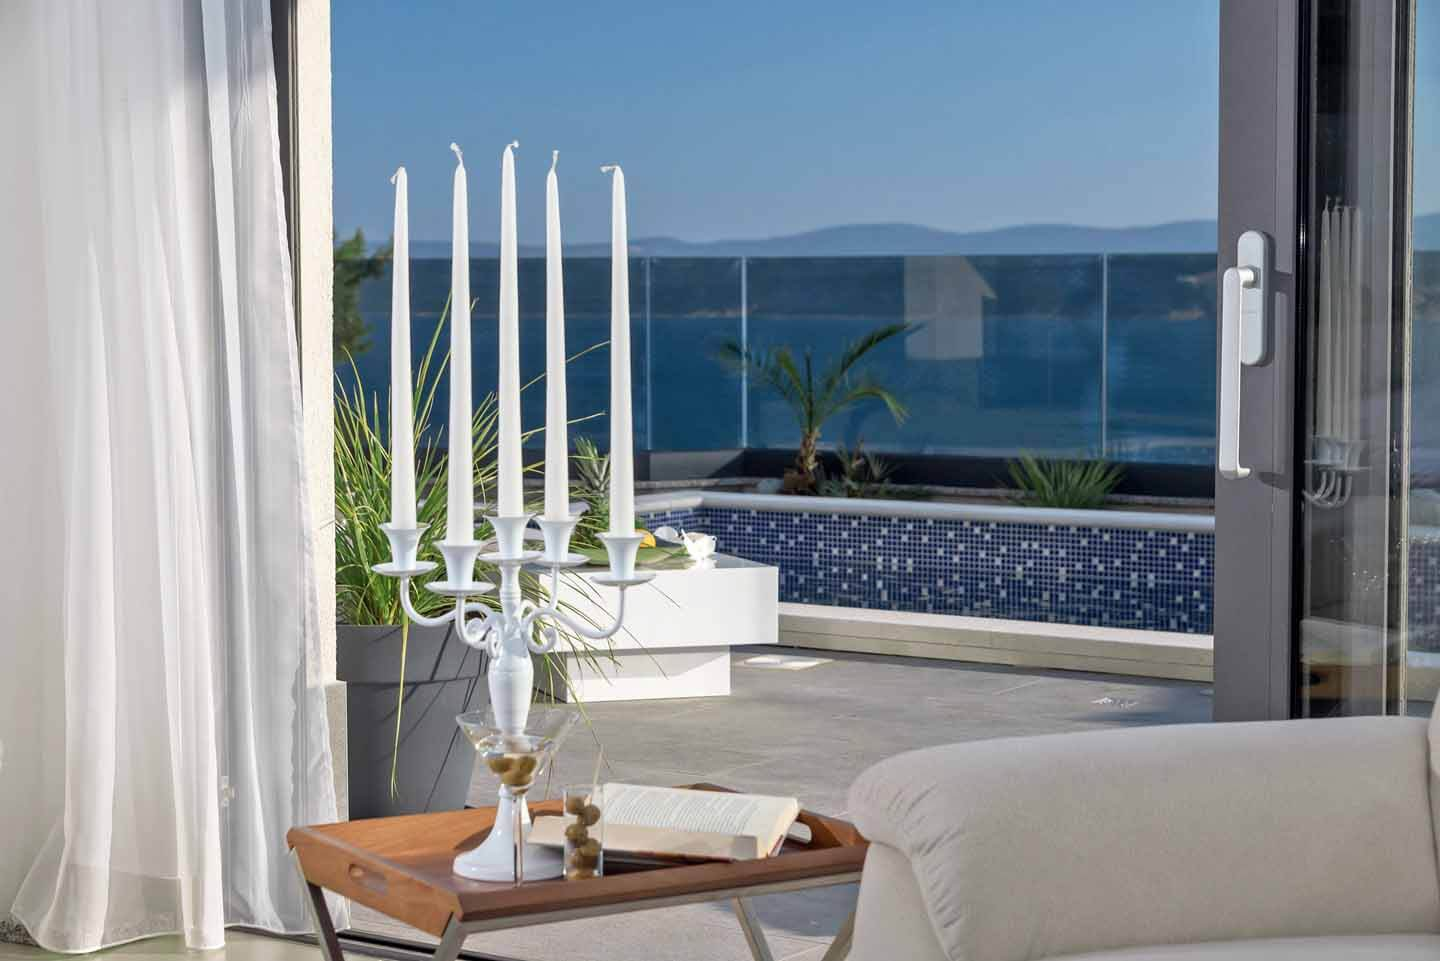 Terrace acces and sea view